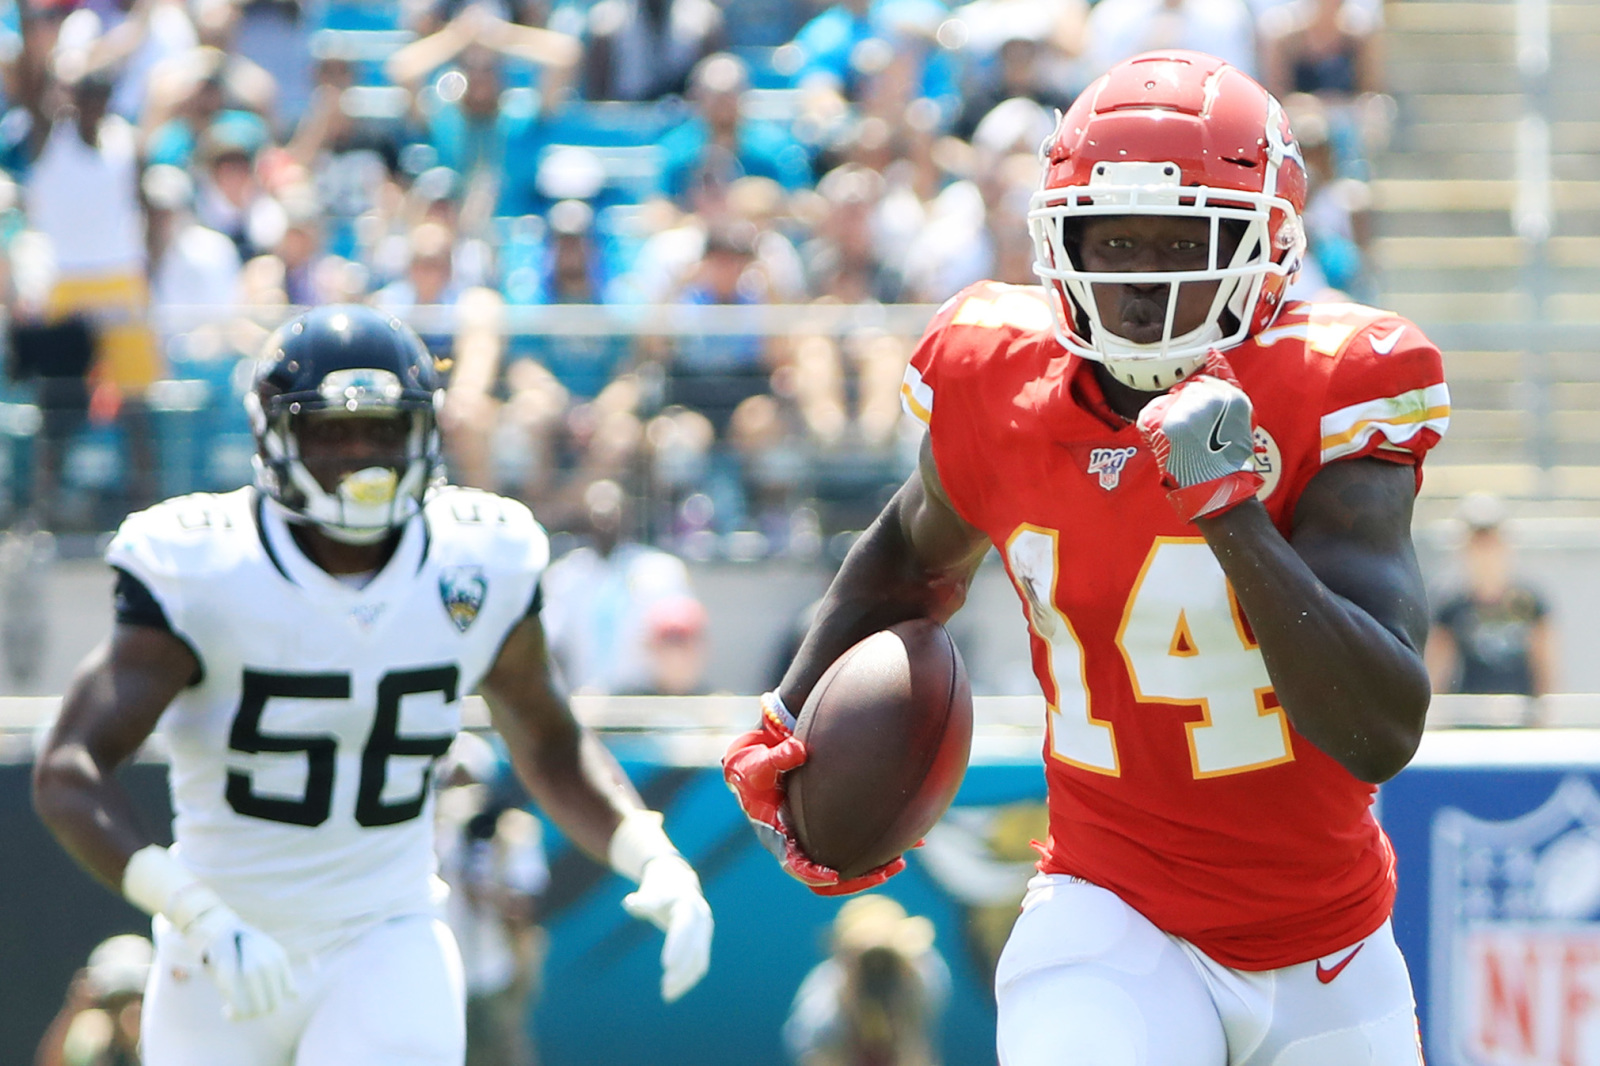 Here's why the Chiefs hit a home run with the Sammy Watkins deal